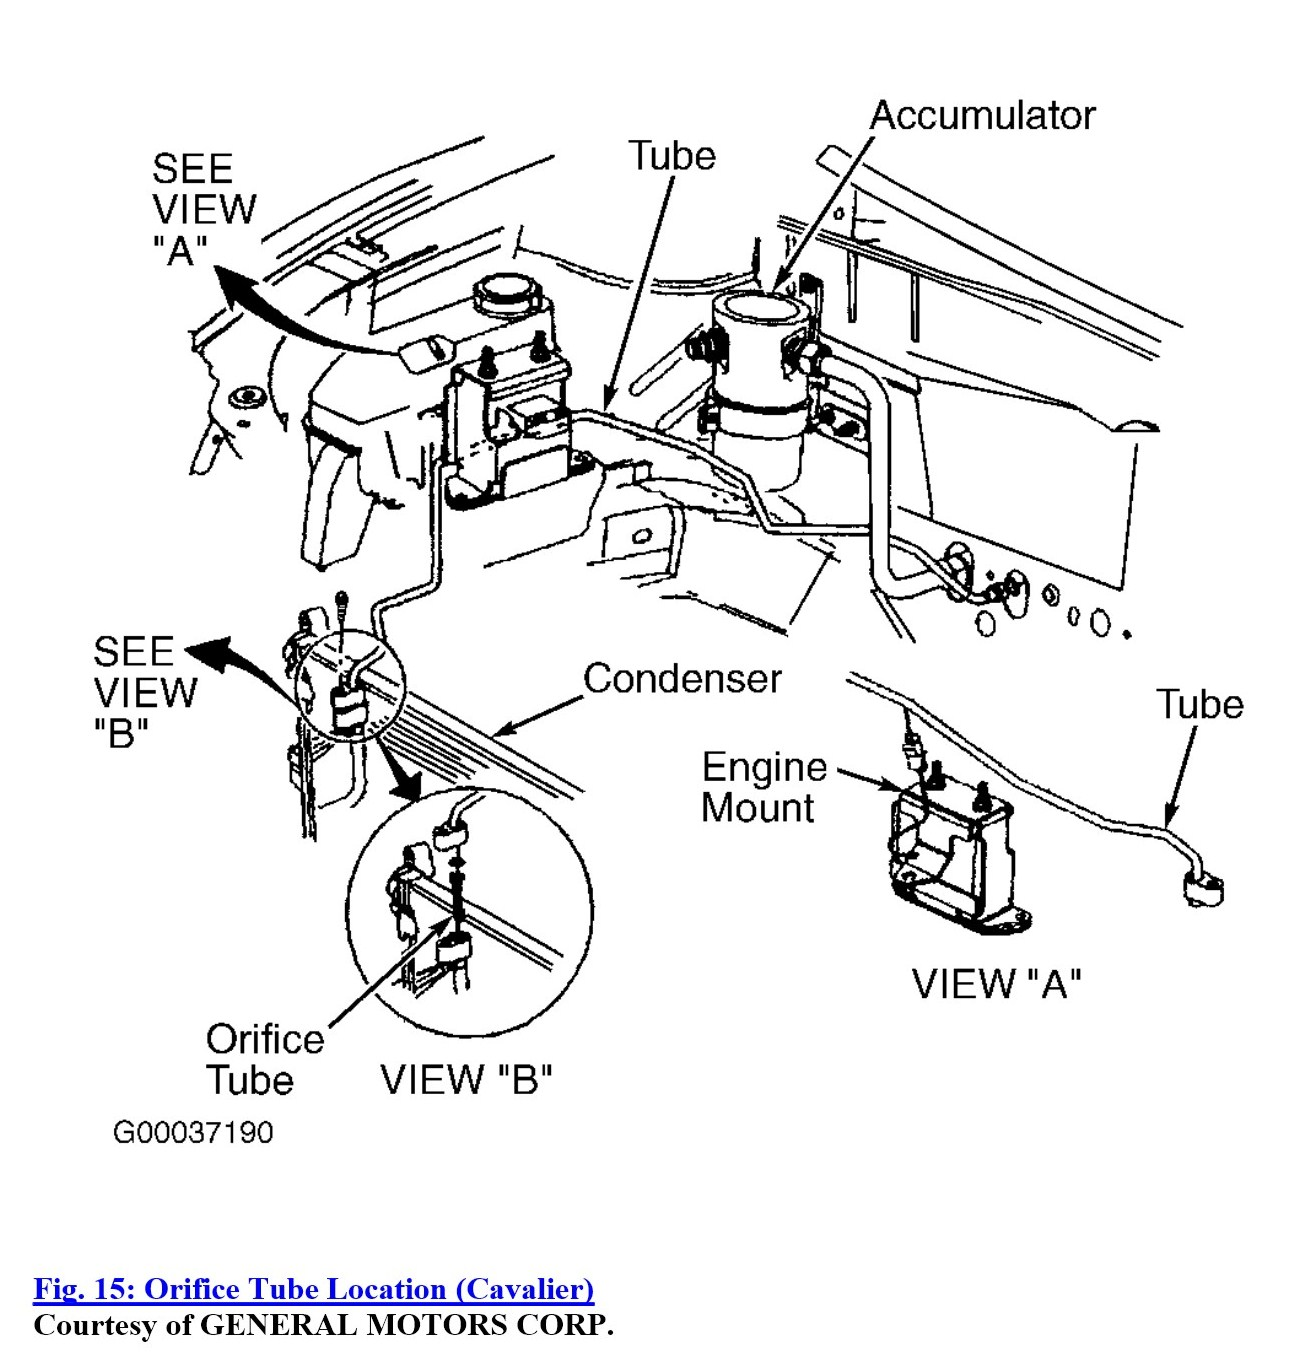 Ford Windstar Air Conditioning Diagram together with Idle Air Control Valve Location 2002 Kia Optima likewise T16111682 No voltage from switch solonoid furthermore AutoTrans further T16124251 Sensor coolant temperature mazda 5. on wiring diagram mazda mpv 2001